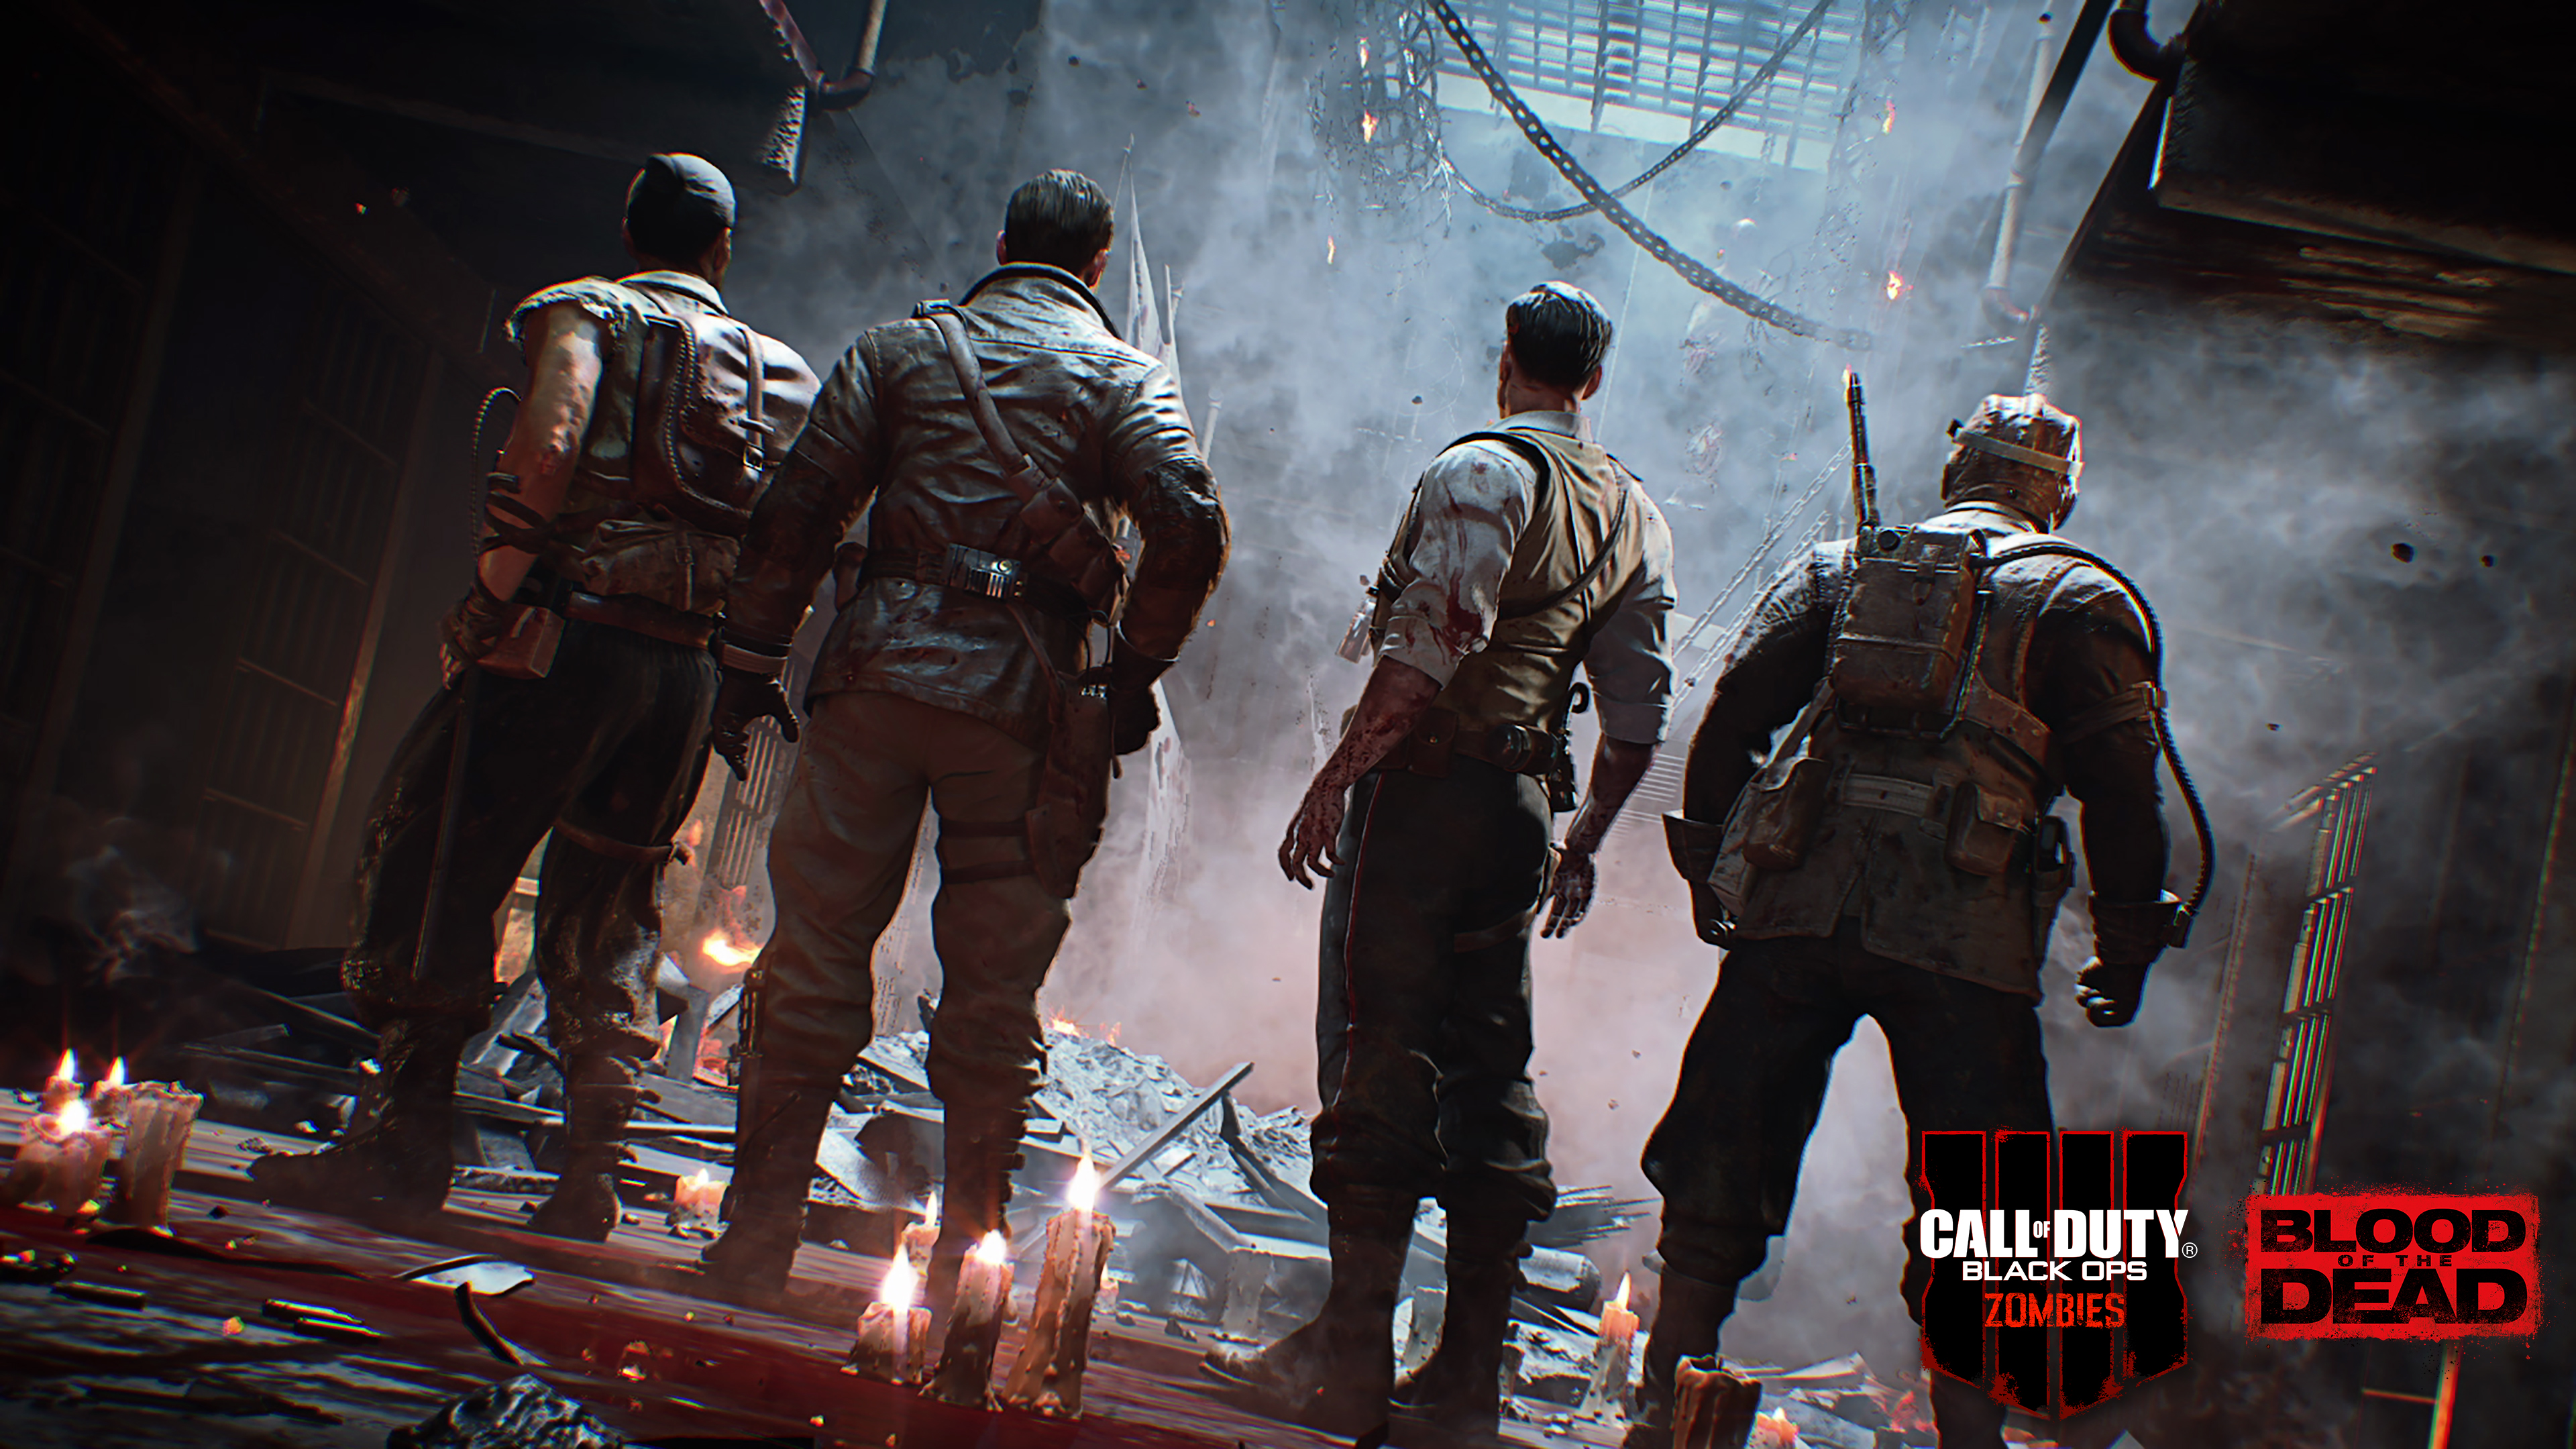 Zombies Wallpaper Black Ops 2